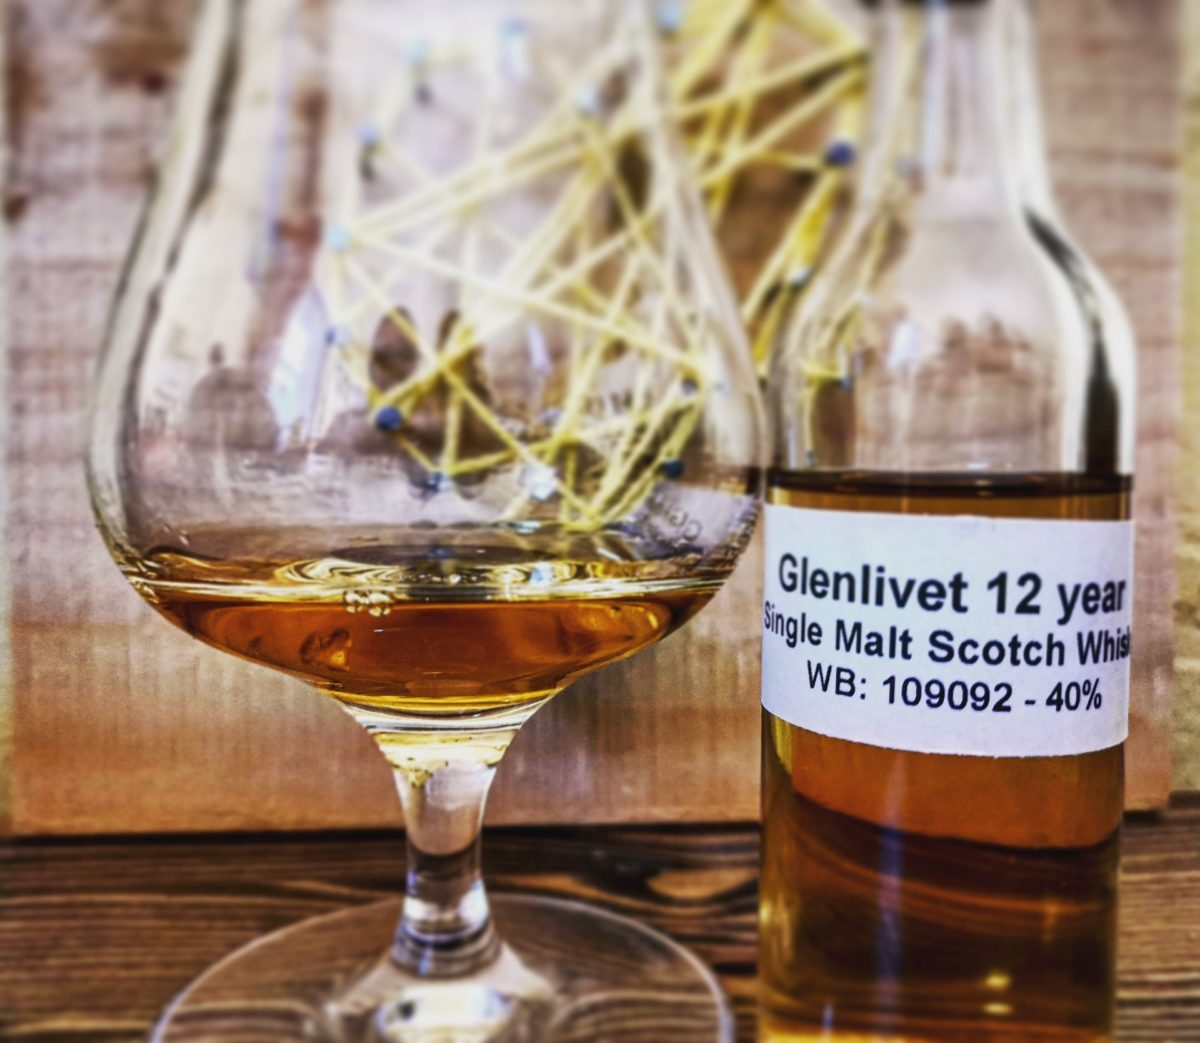 The Glenlivet 12 Jahre Speyside Single Malt Scotch Whisky